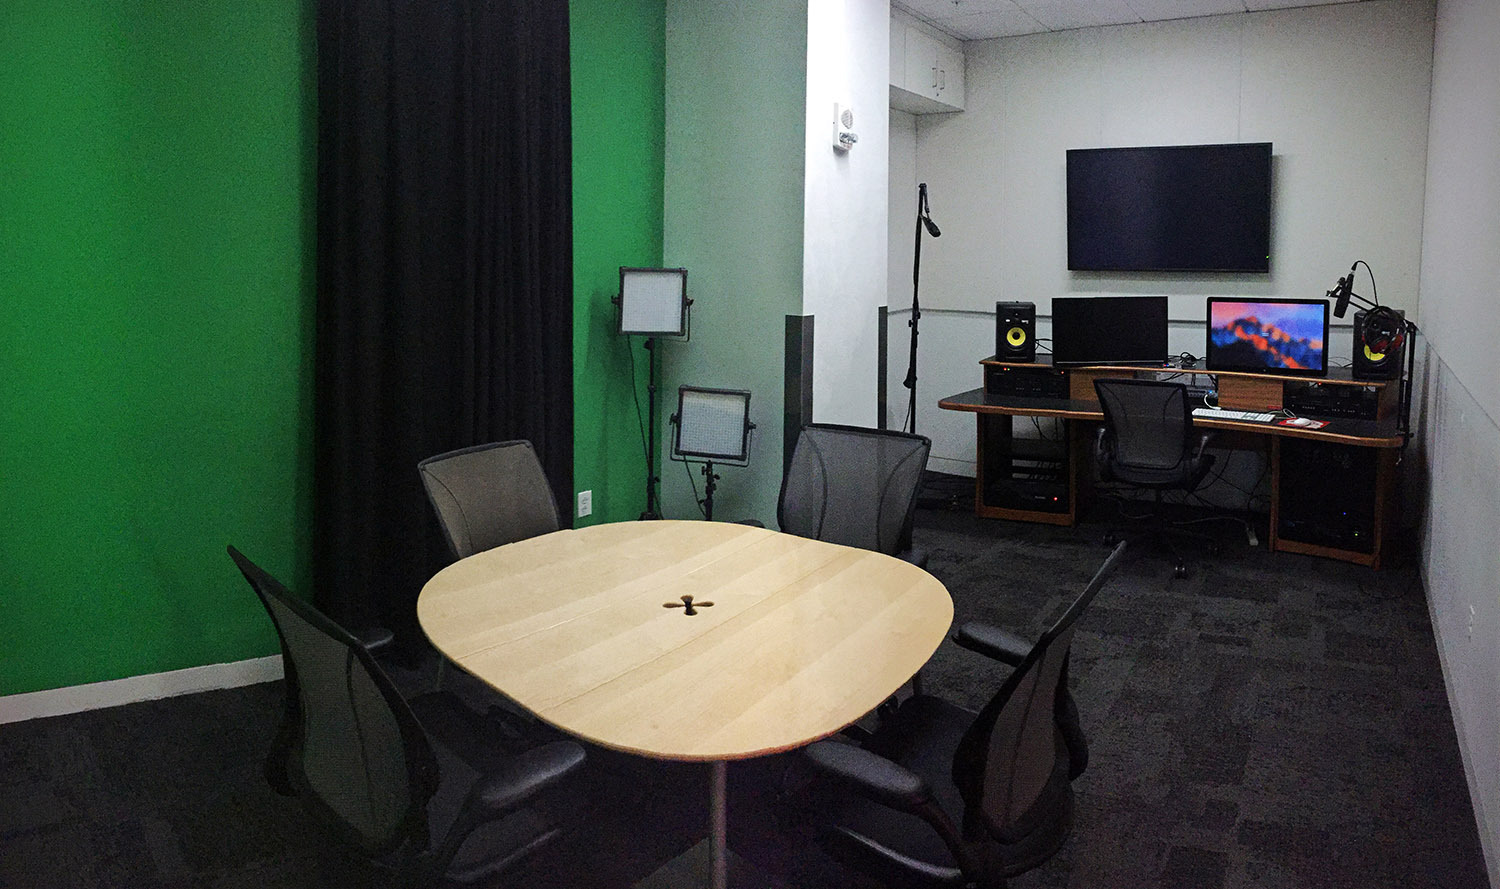 The green screen studio at Hunt Library at NC State